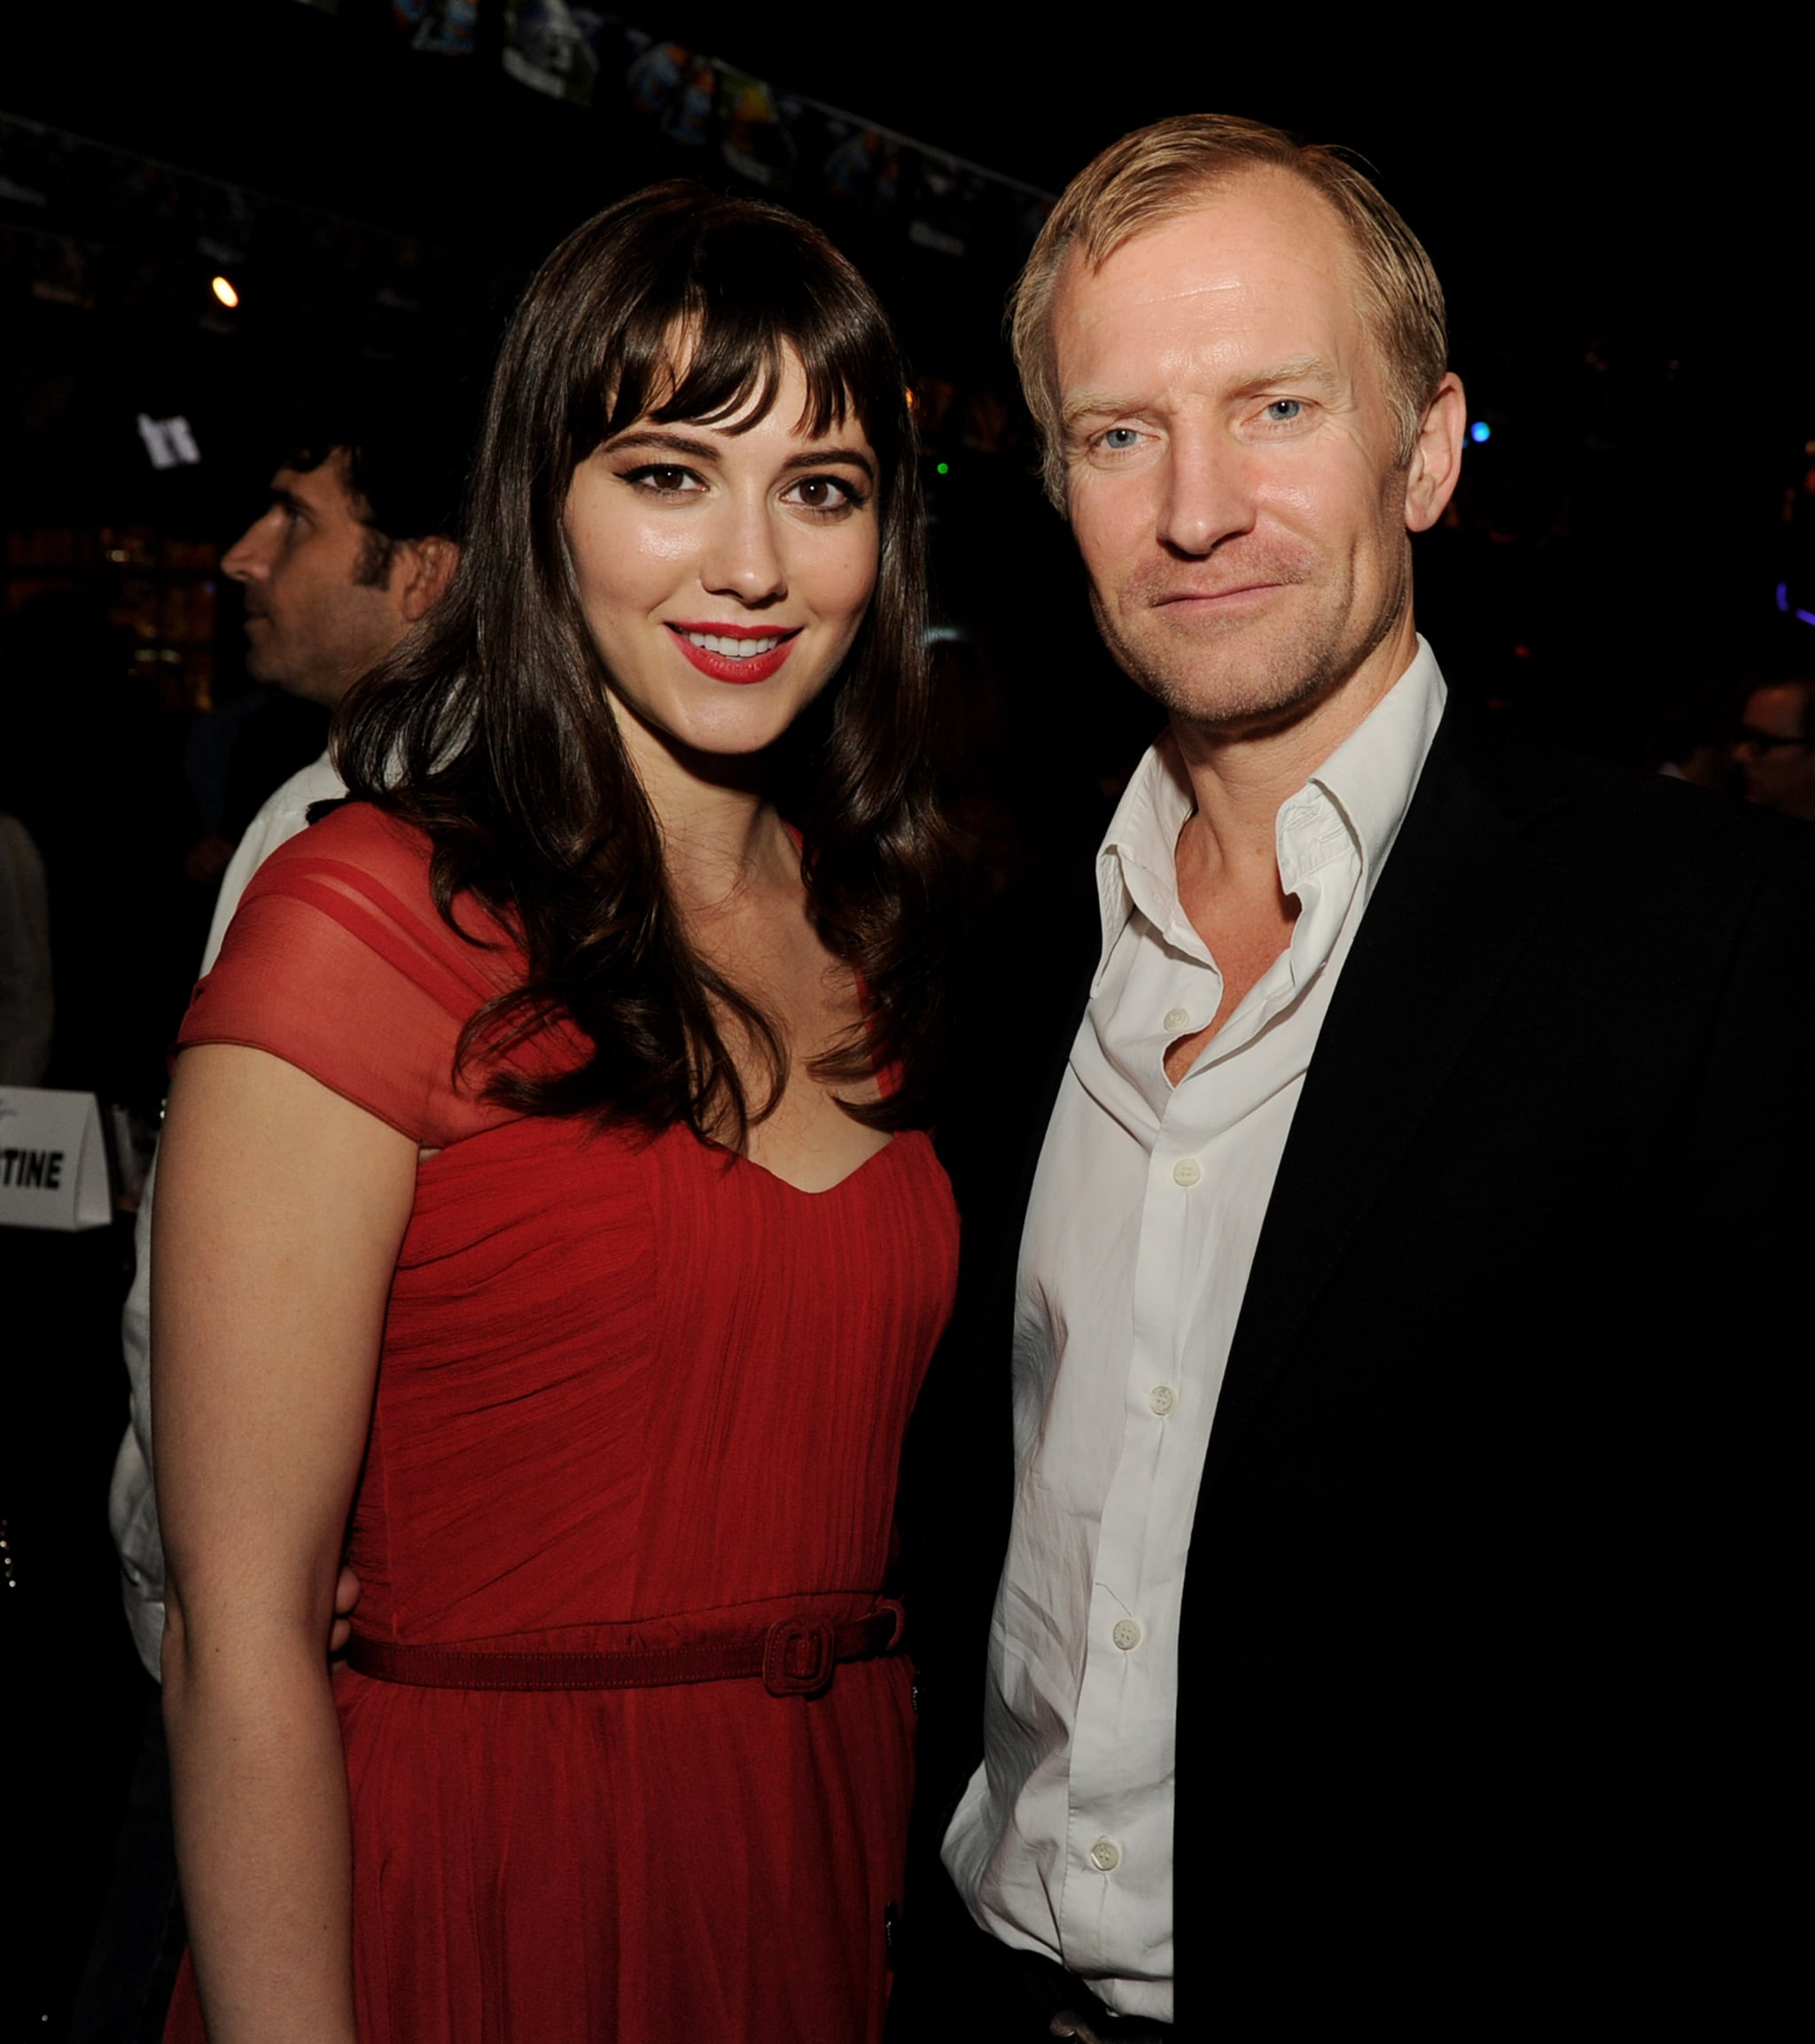 Mary Elizabeth Winstead and Ulrich Thomsen at the after party for The Thing's LA premiere.